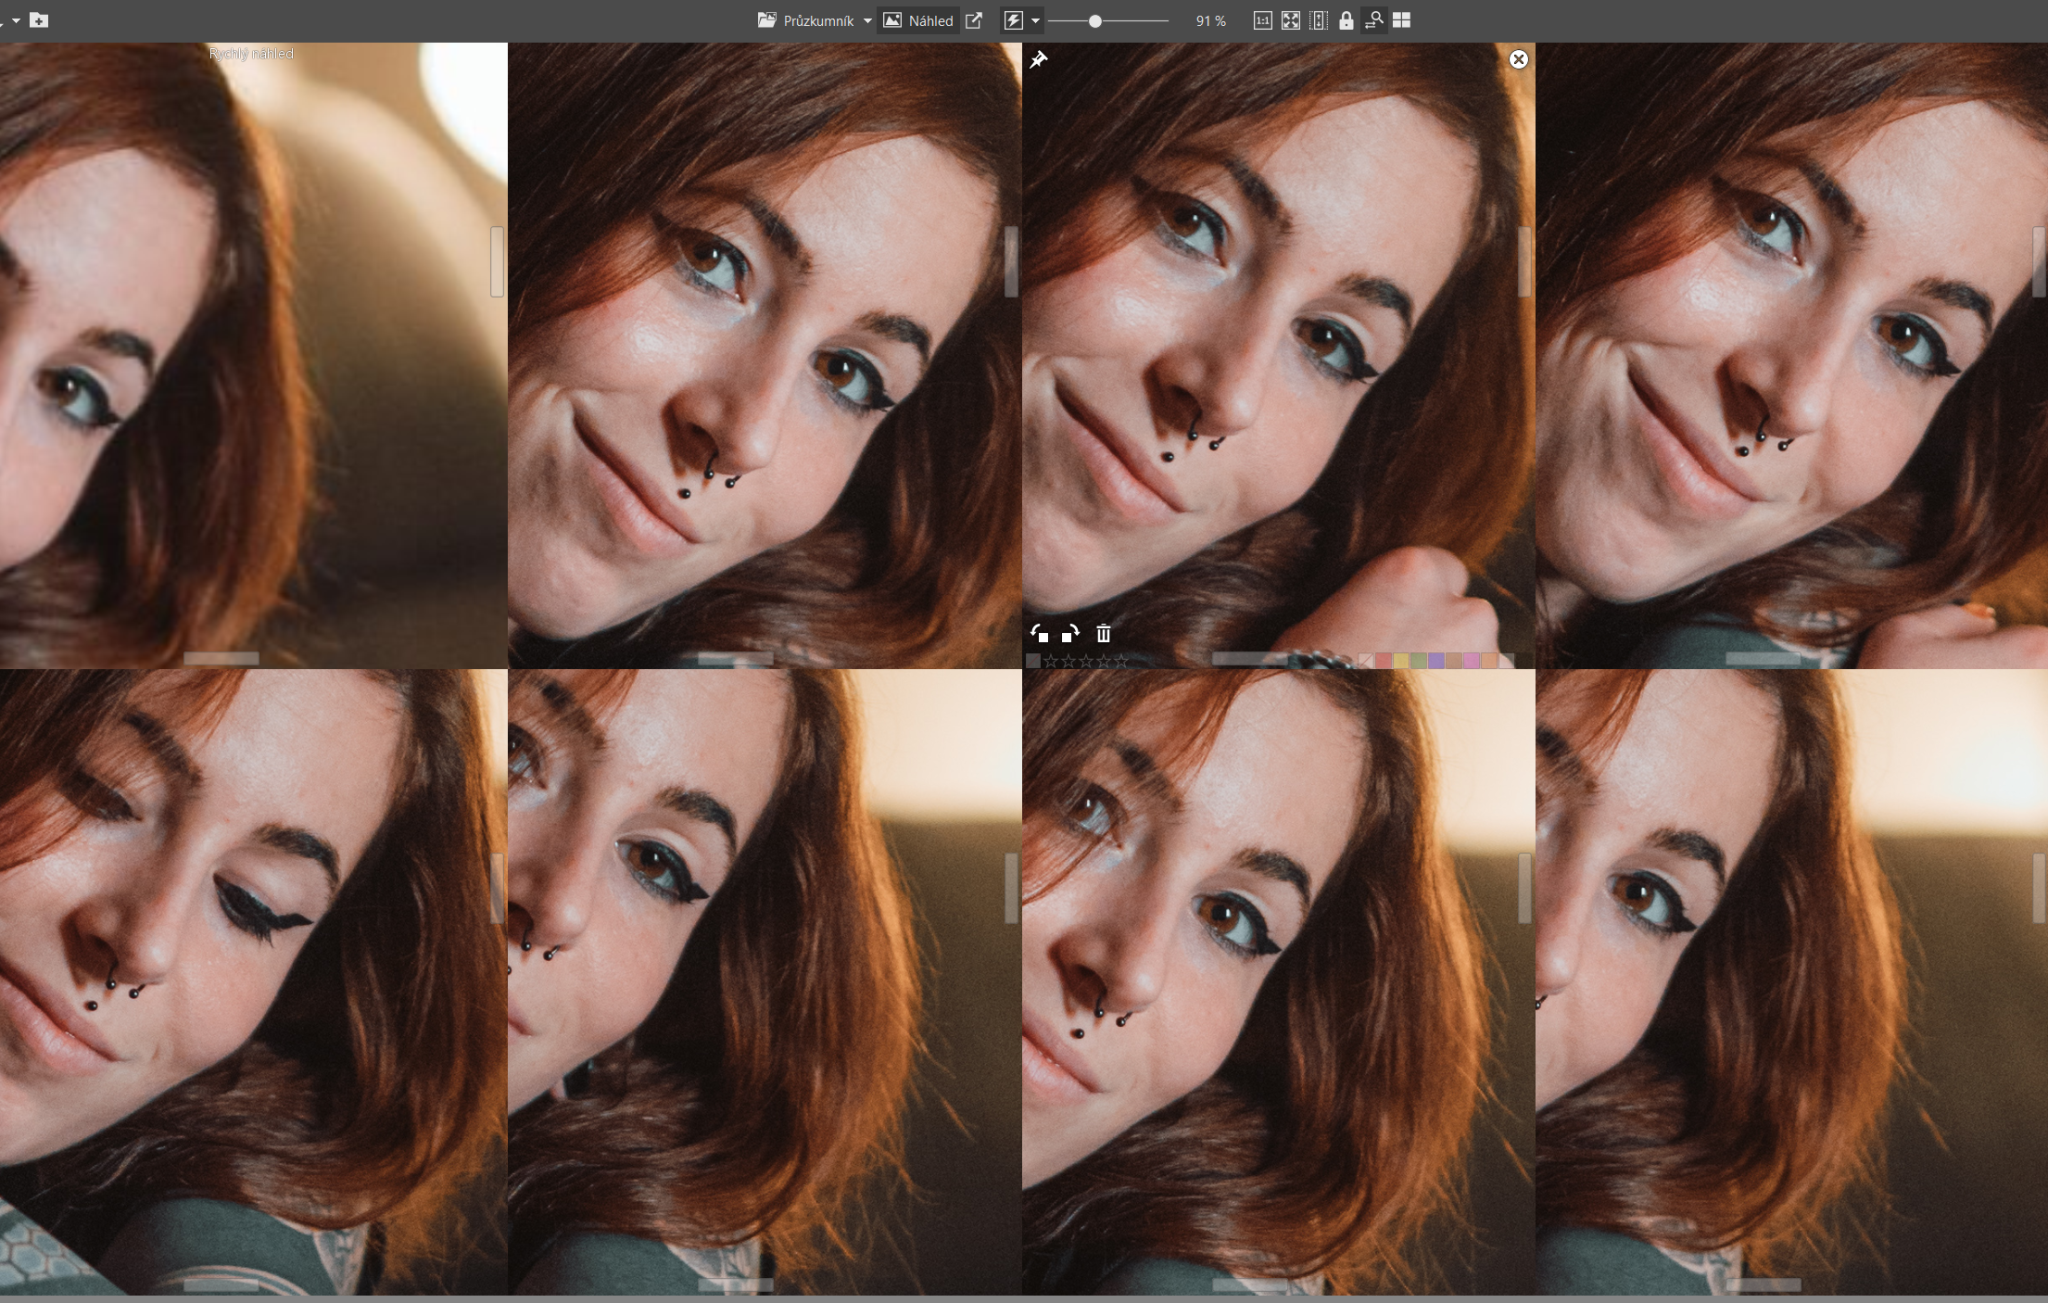 Don't know how to choose the best photo? Use Batch Selection!